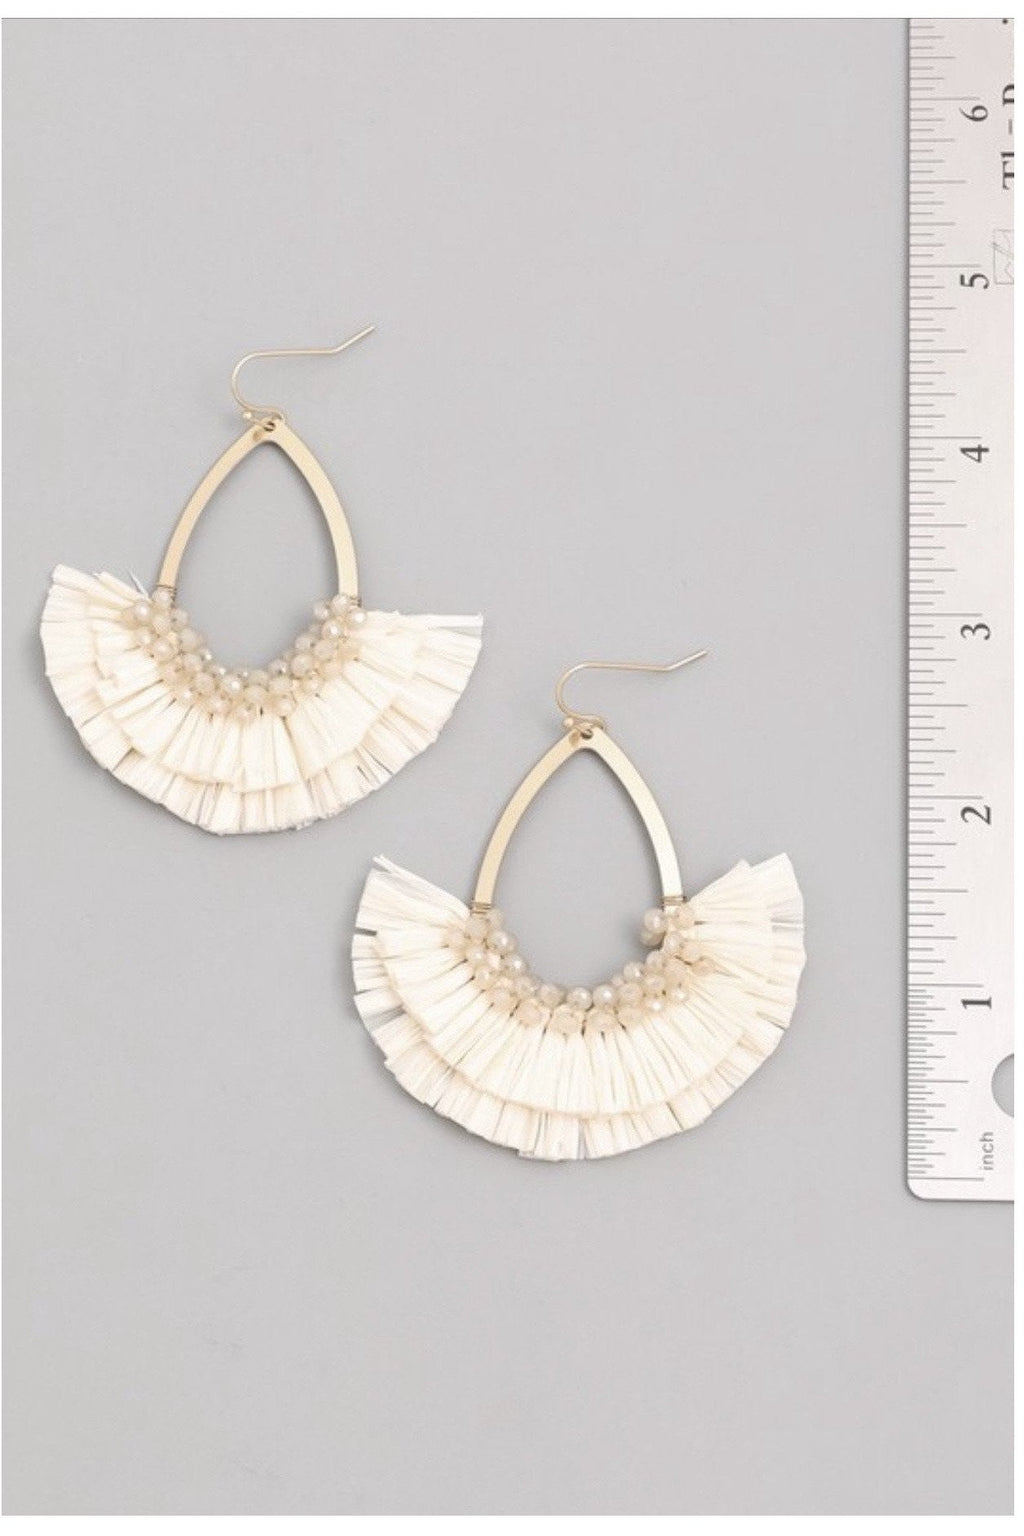 Fiesta Siesta Tequila Repeat Earrings - Indigo Closet